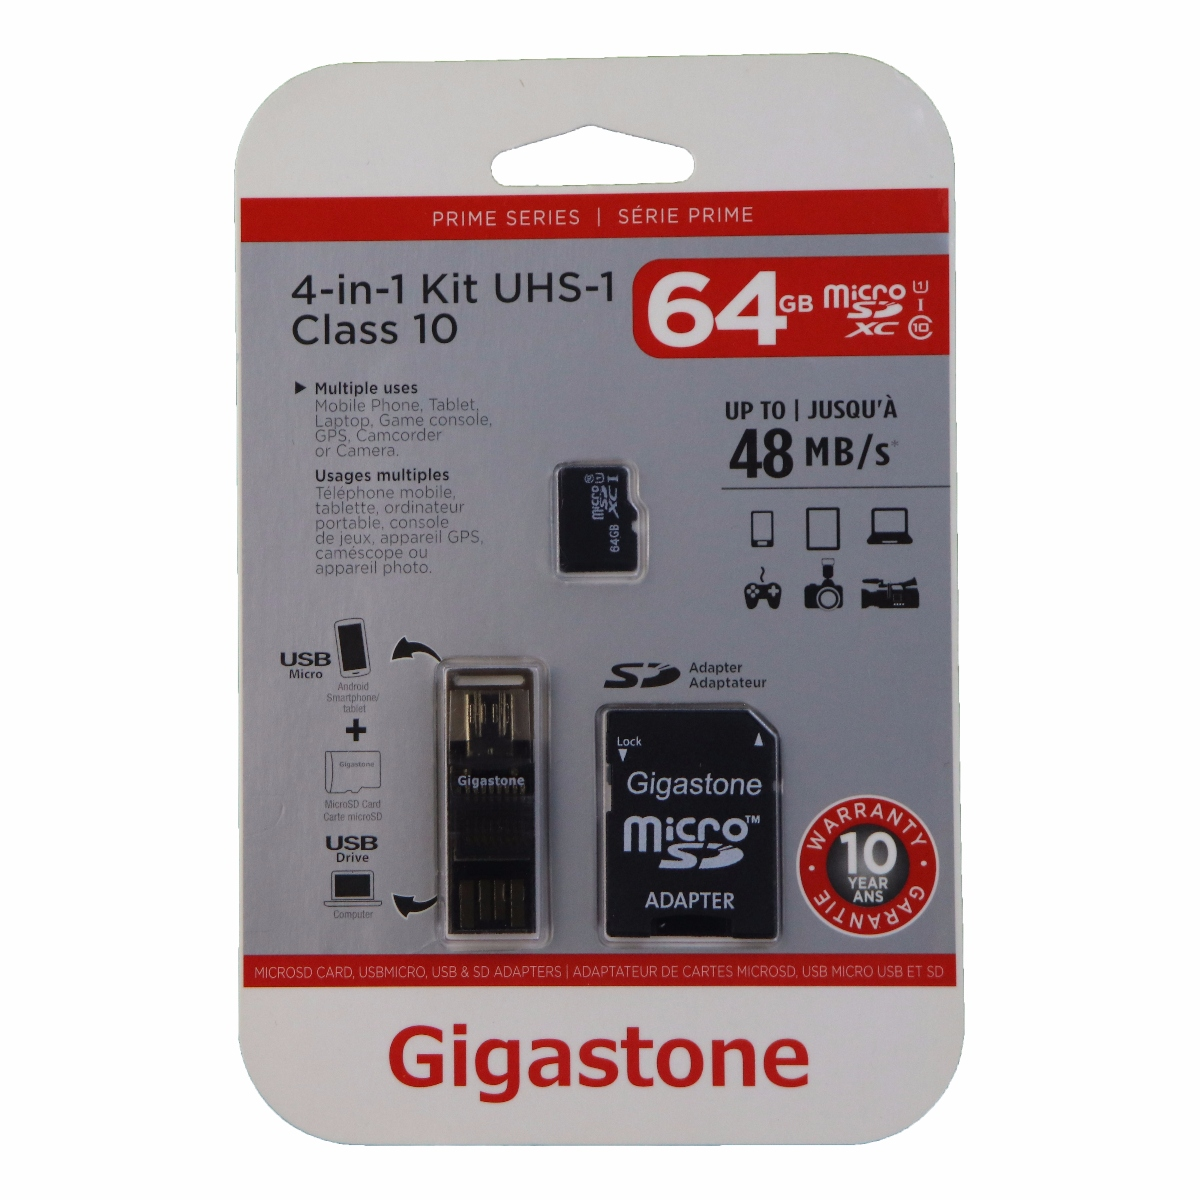 Gigastone 4-in-1 64GB MicroSD Kit with USB and Micro-USB Card Reading Adapter